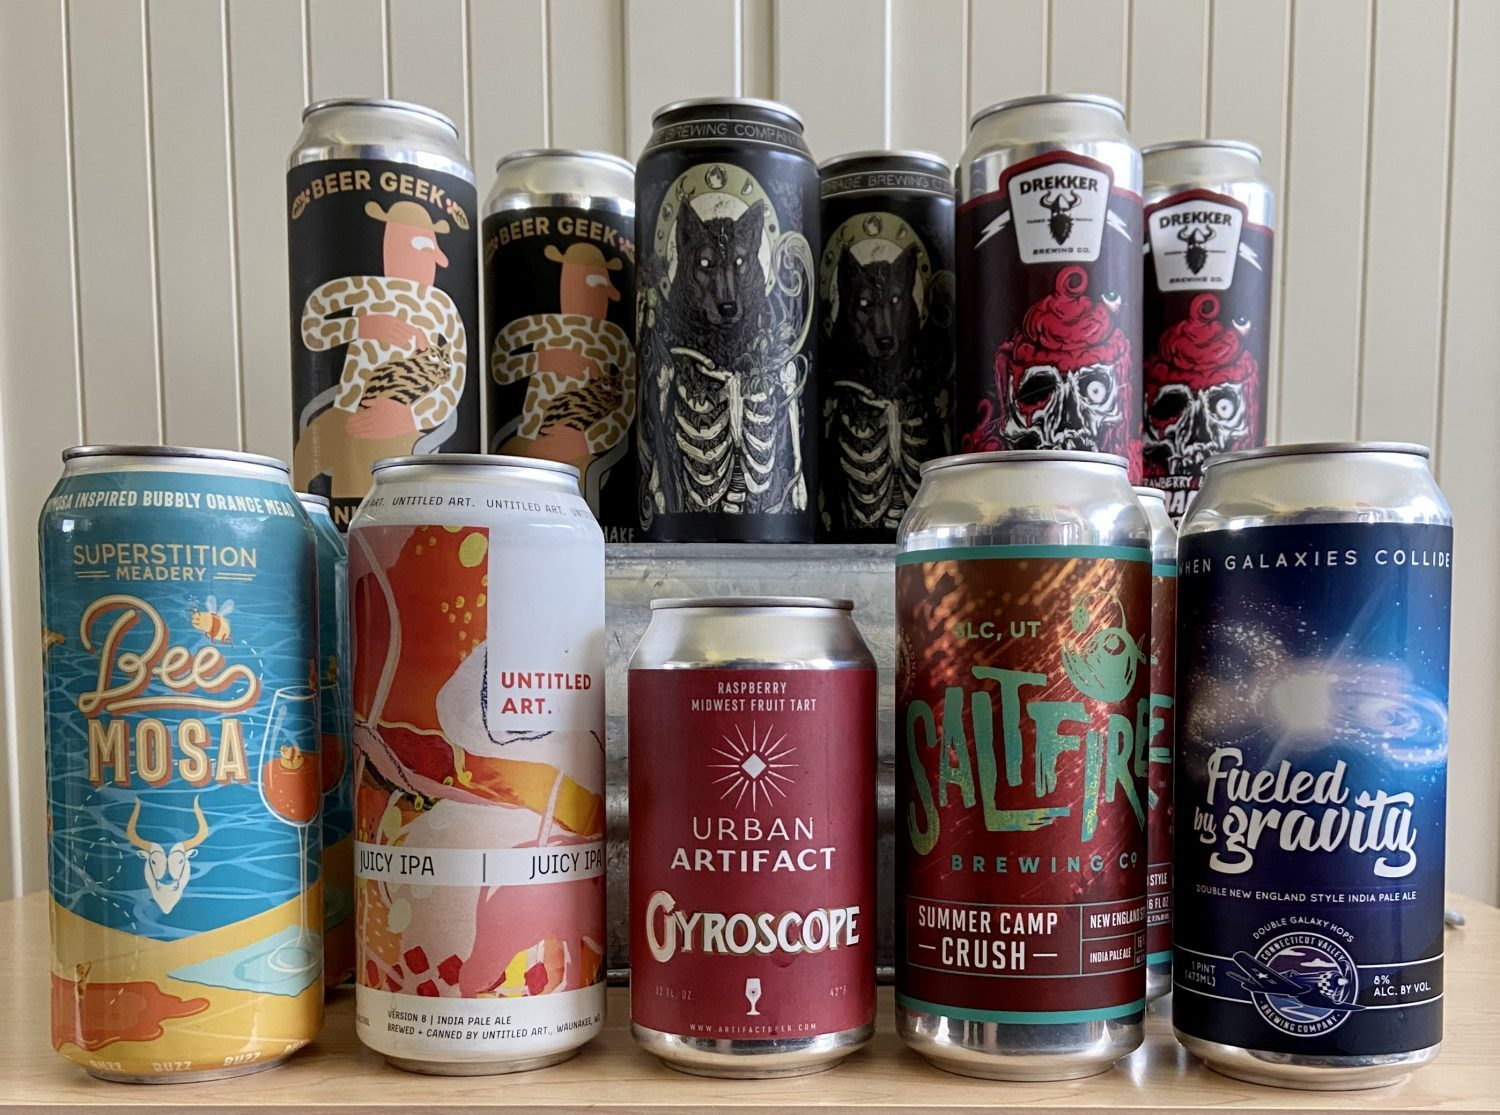 The Mixed Beer Gift Box from Tavour features a nice array of beers from Anchorage Brewing, Mikkeller, Drekker, Saltfire, Urban Artifact, Untitled Art, Connecticut Valley, and Superstition Meadery.